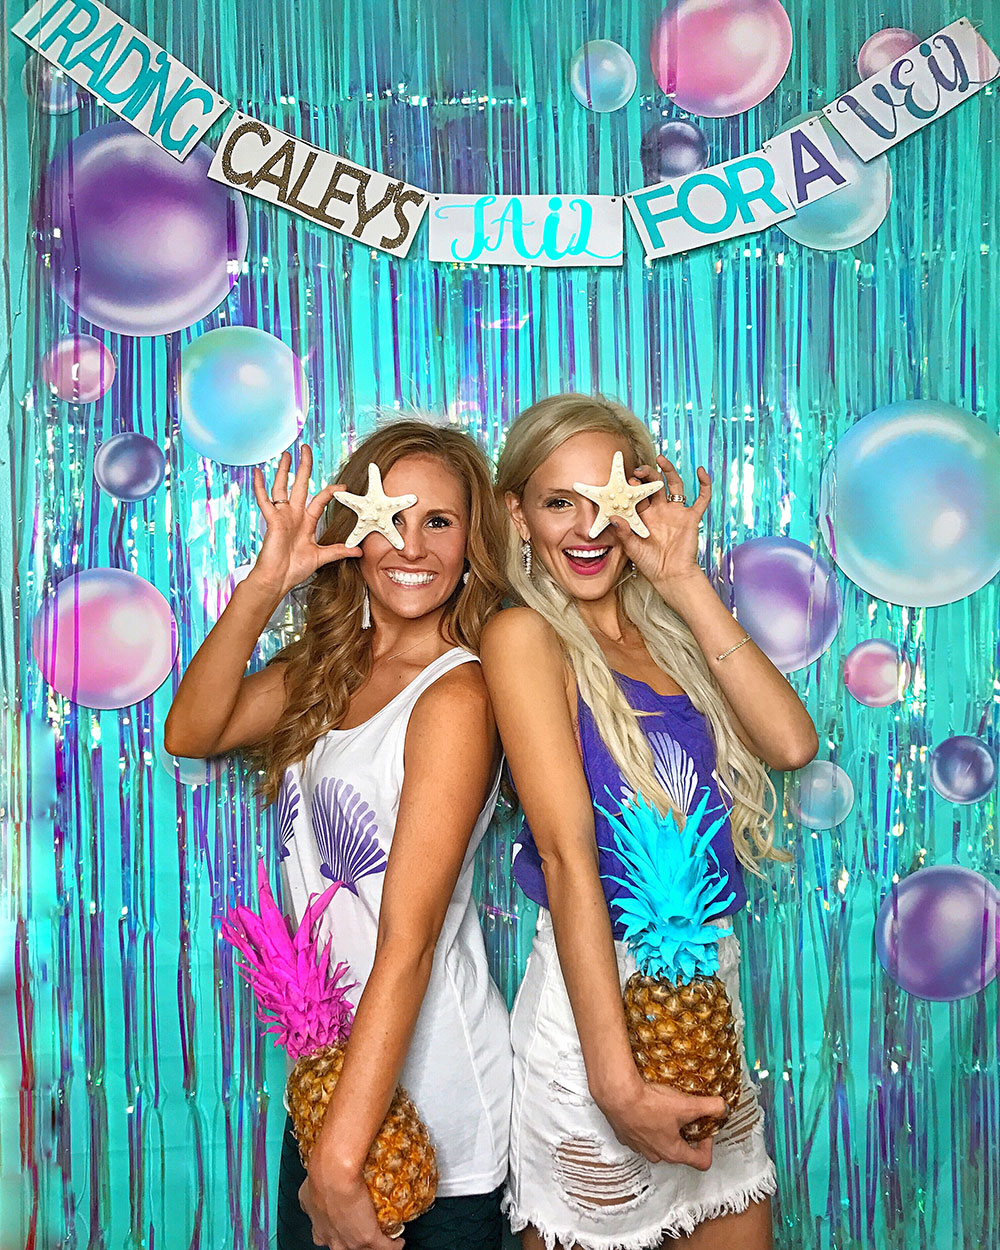 Trading Her Tail for a Veil - Mermaid Bachelorette Party | Vandi Fair